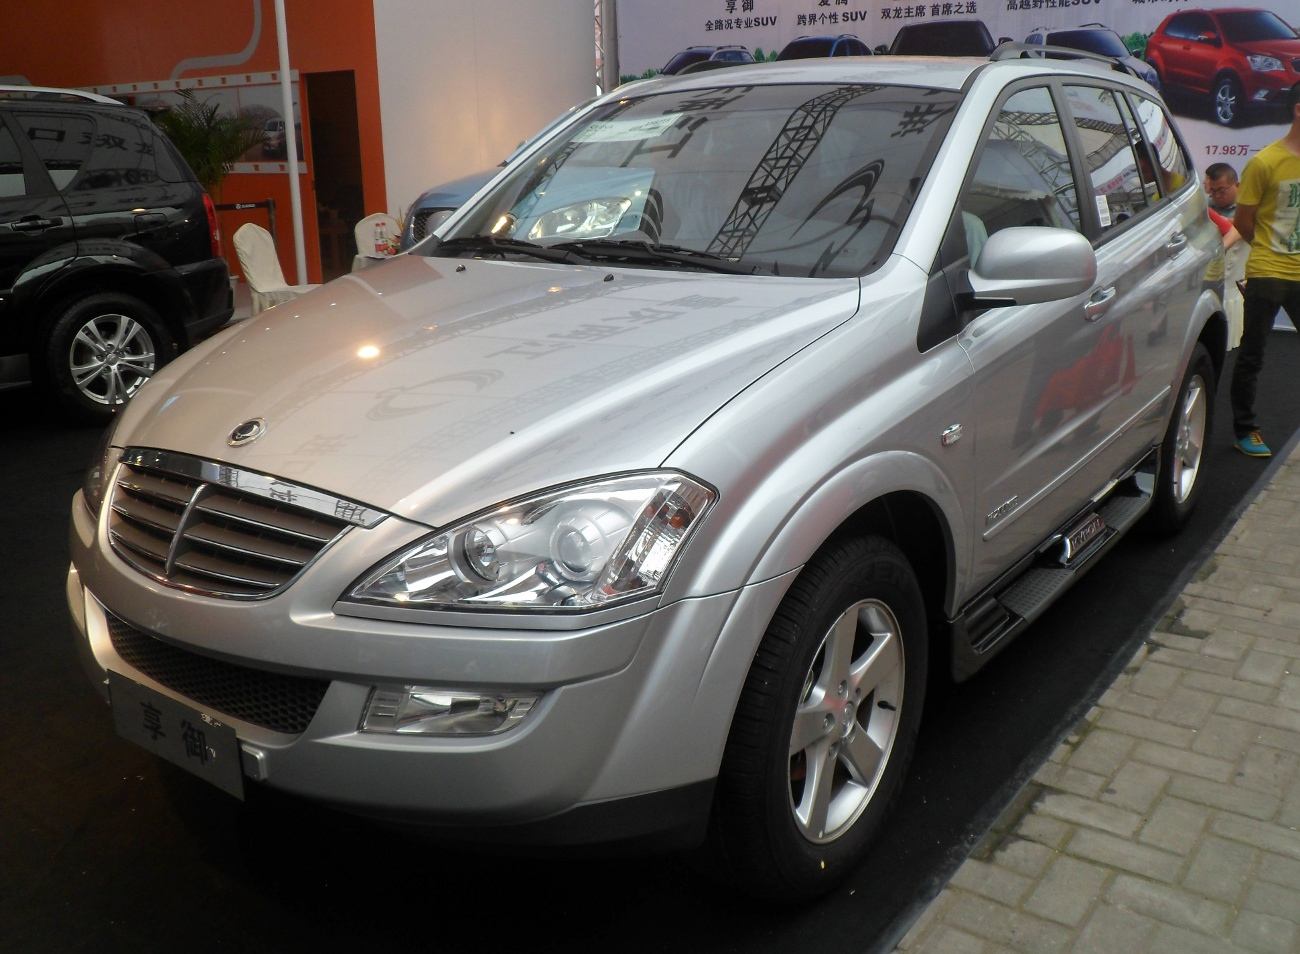 ssangyong kyron ii 2012 #12